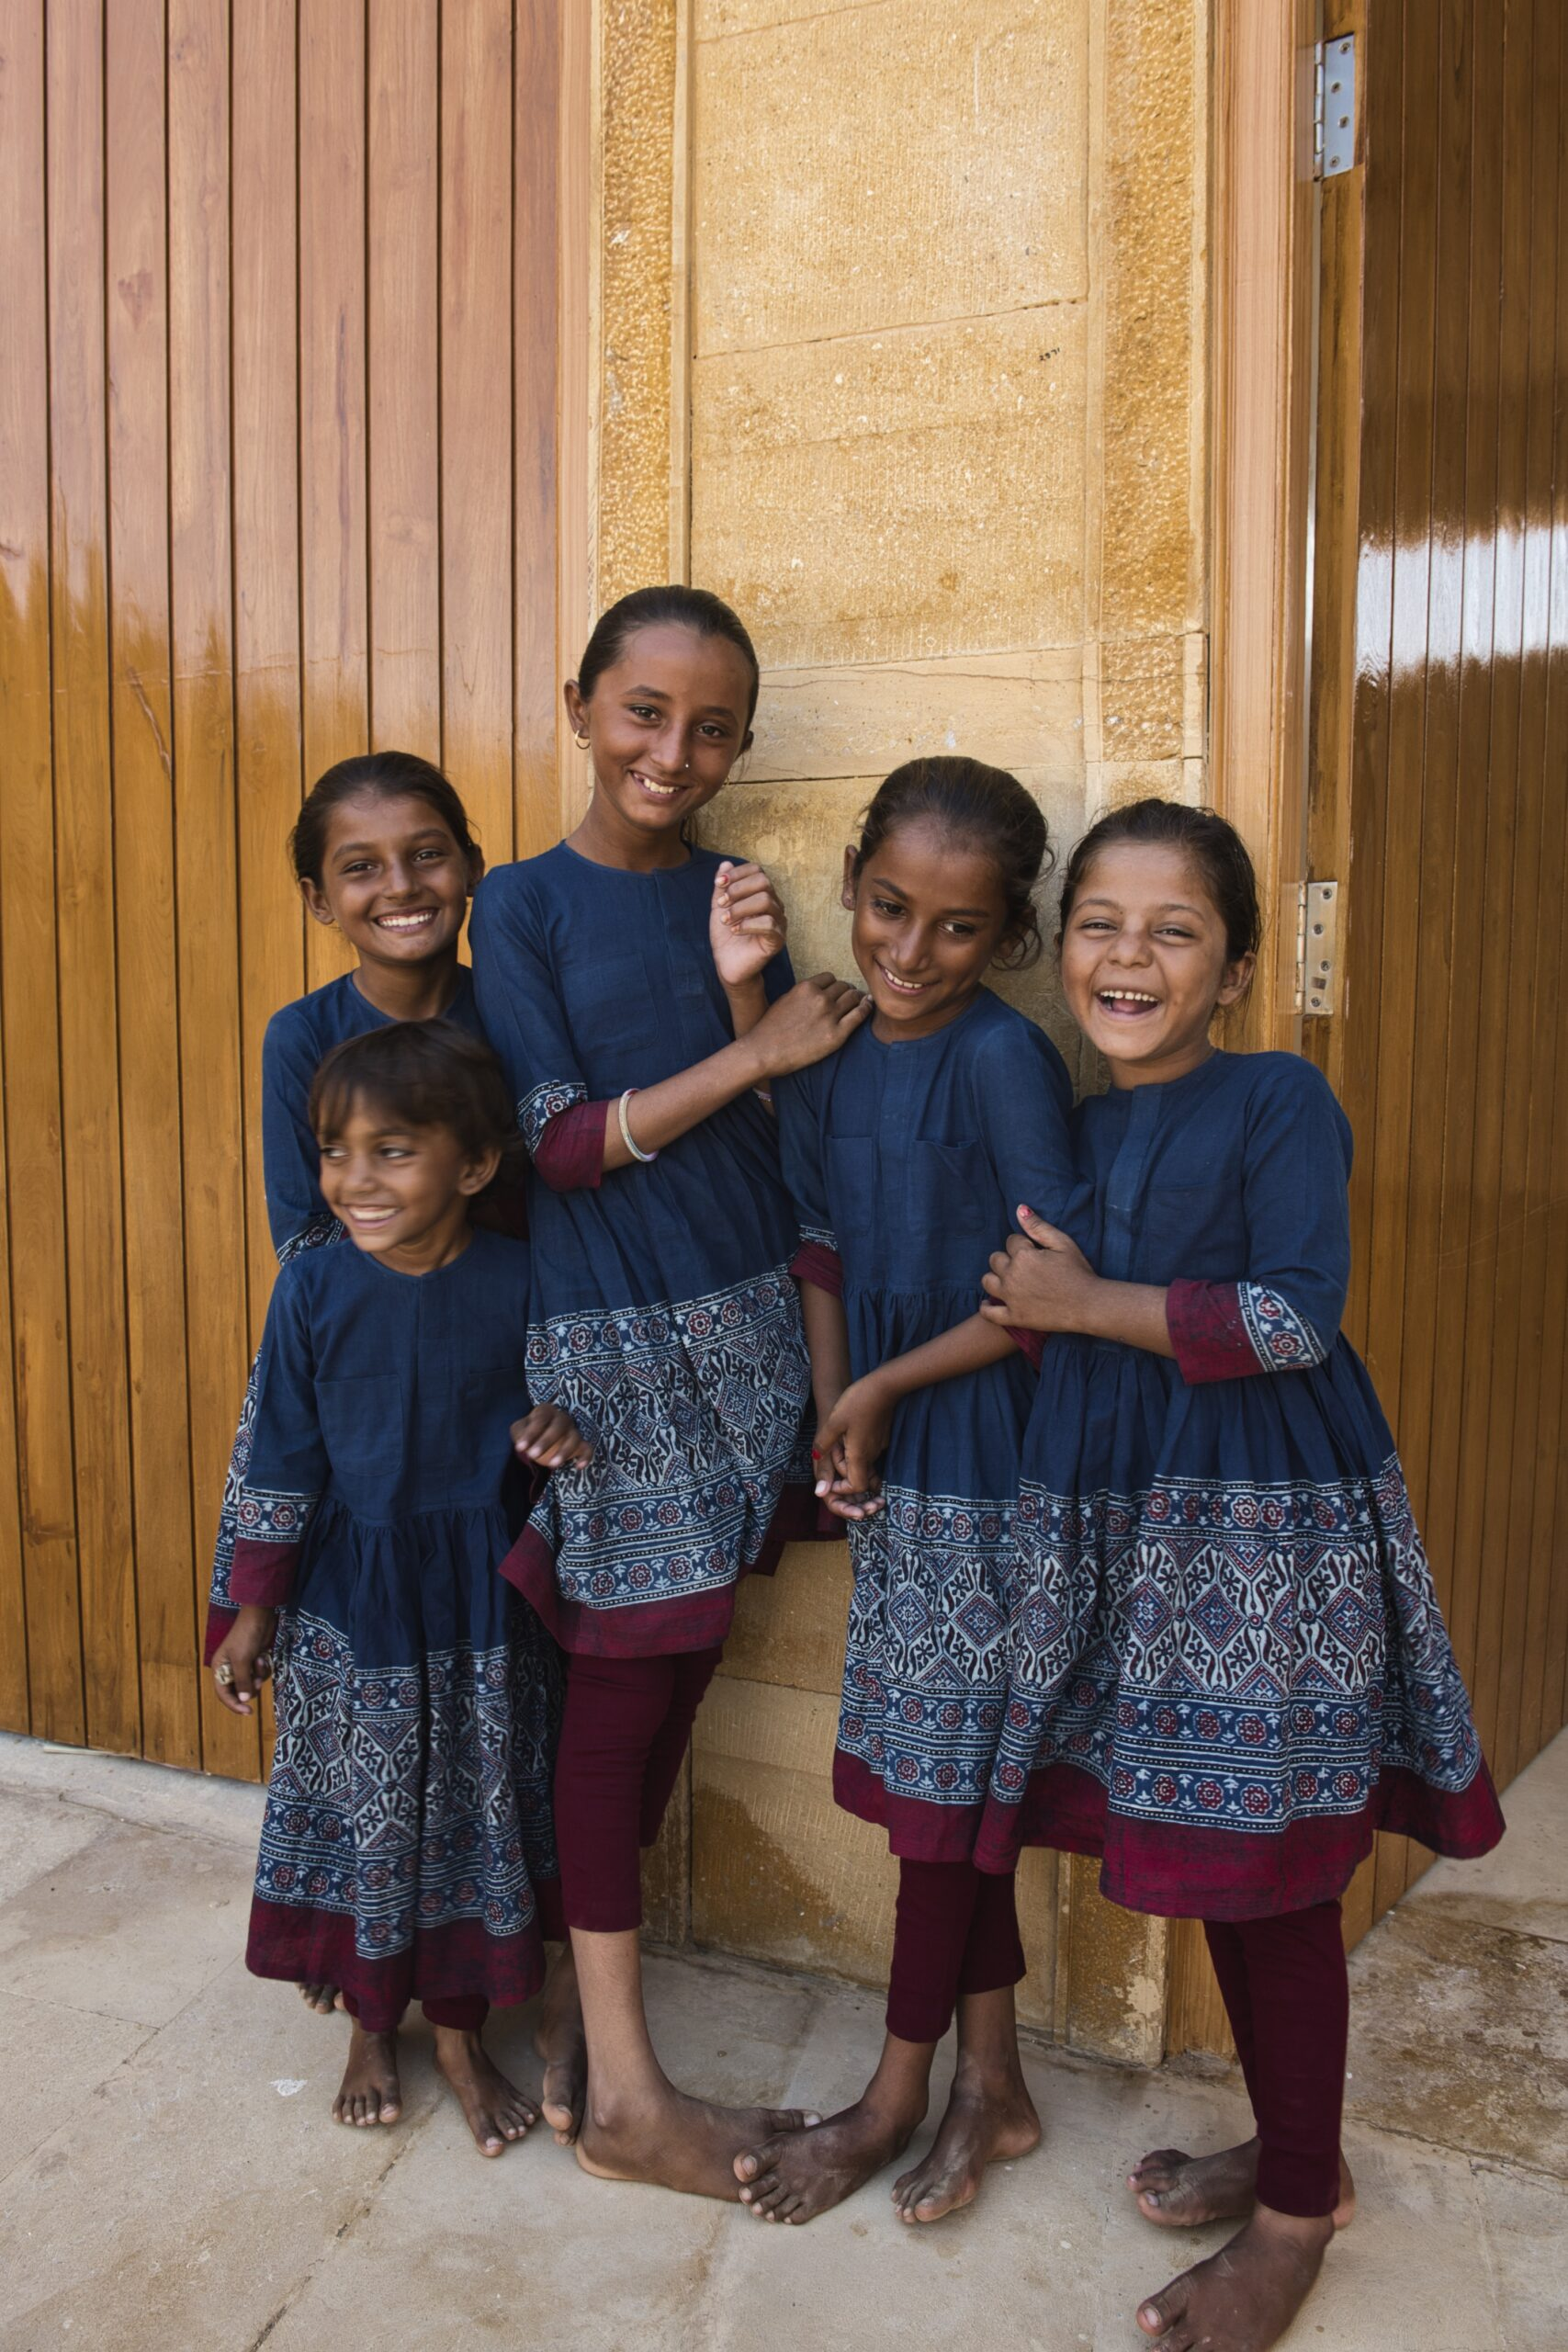 Jaisalmer Schoolkids Get Uniforms Designed by Sabyasachi